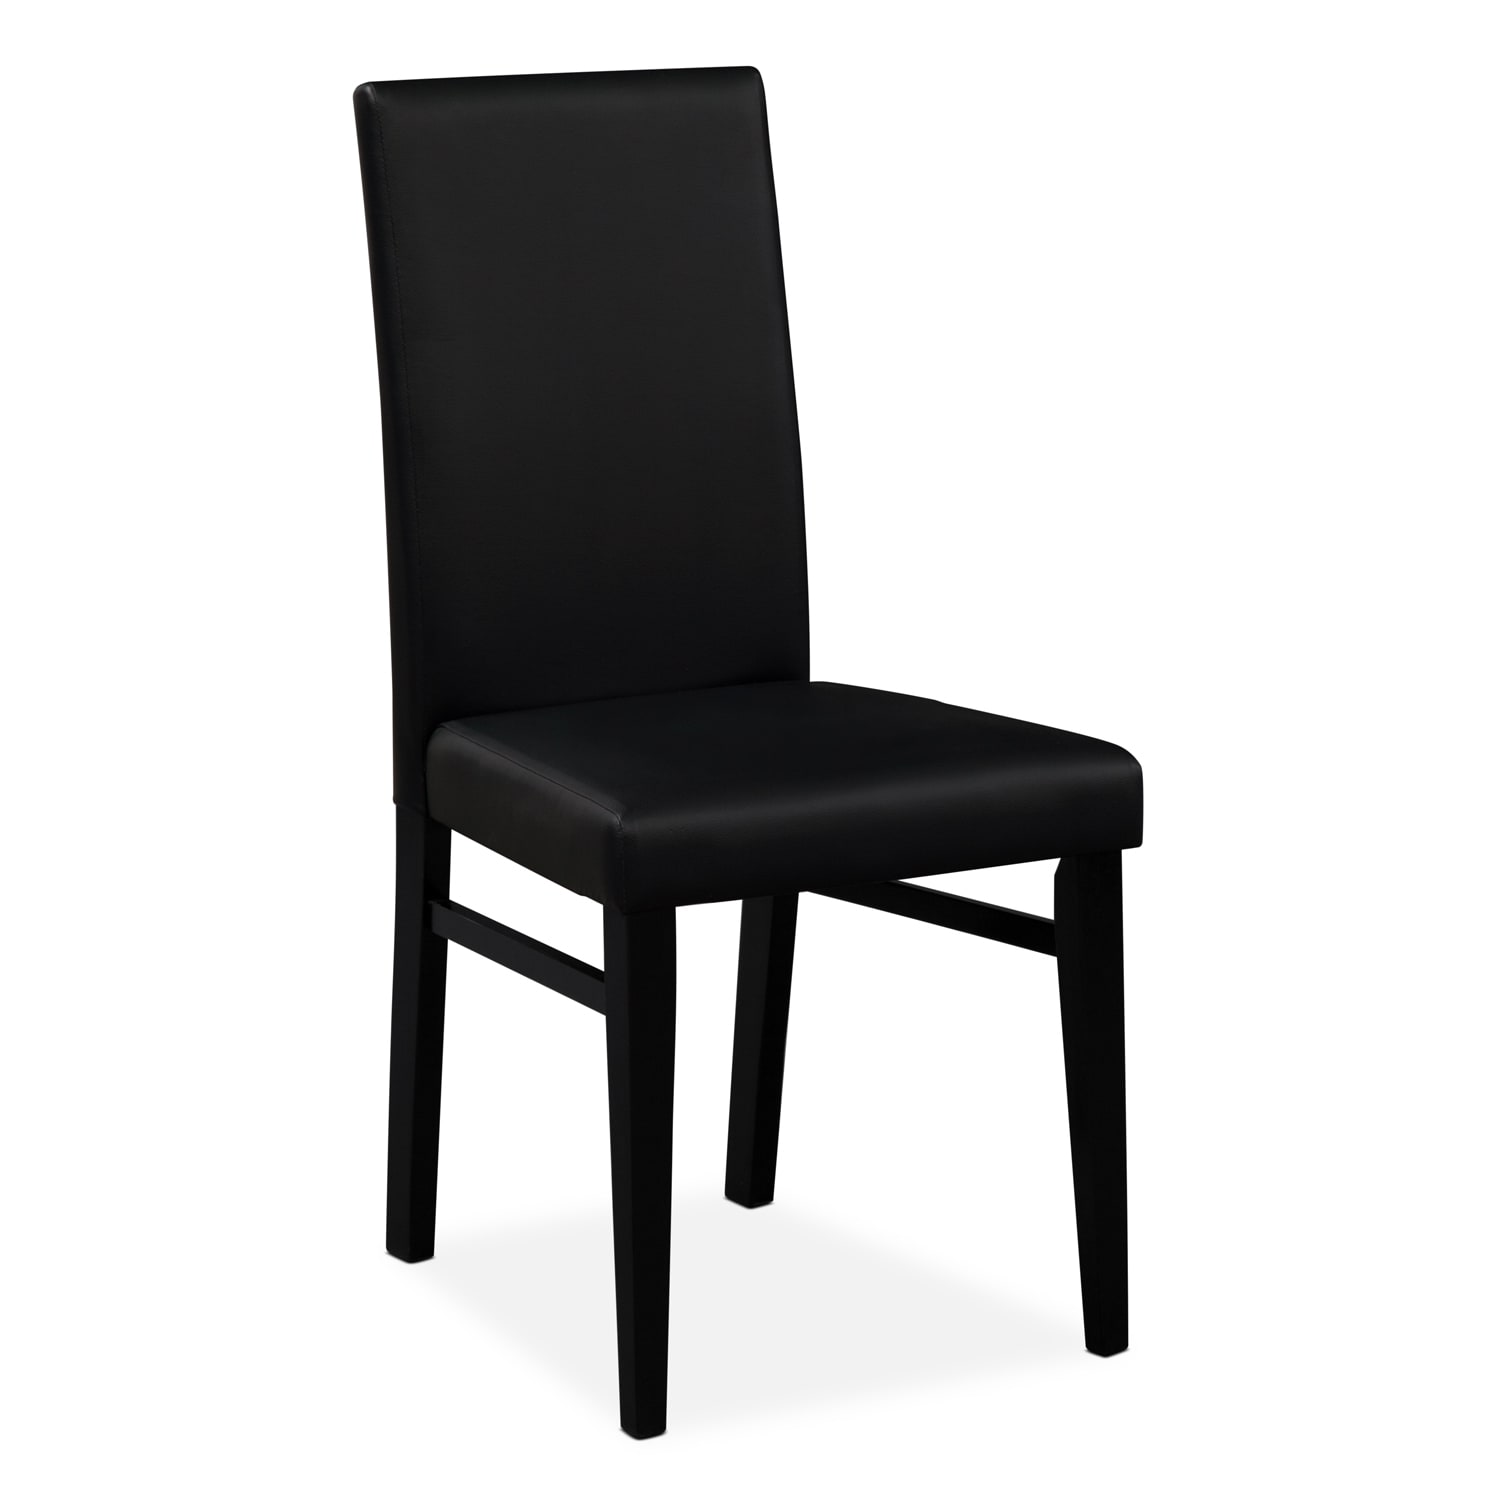 Black Dining Room Table And Chairs: Shadow Table And 4 Chairs - Black